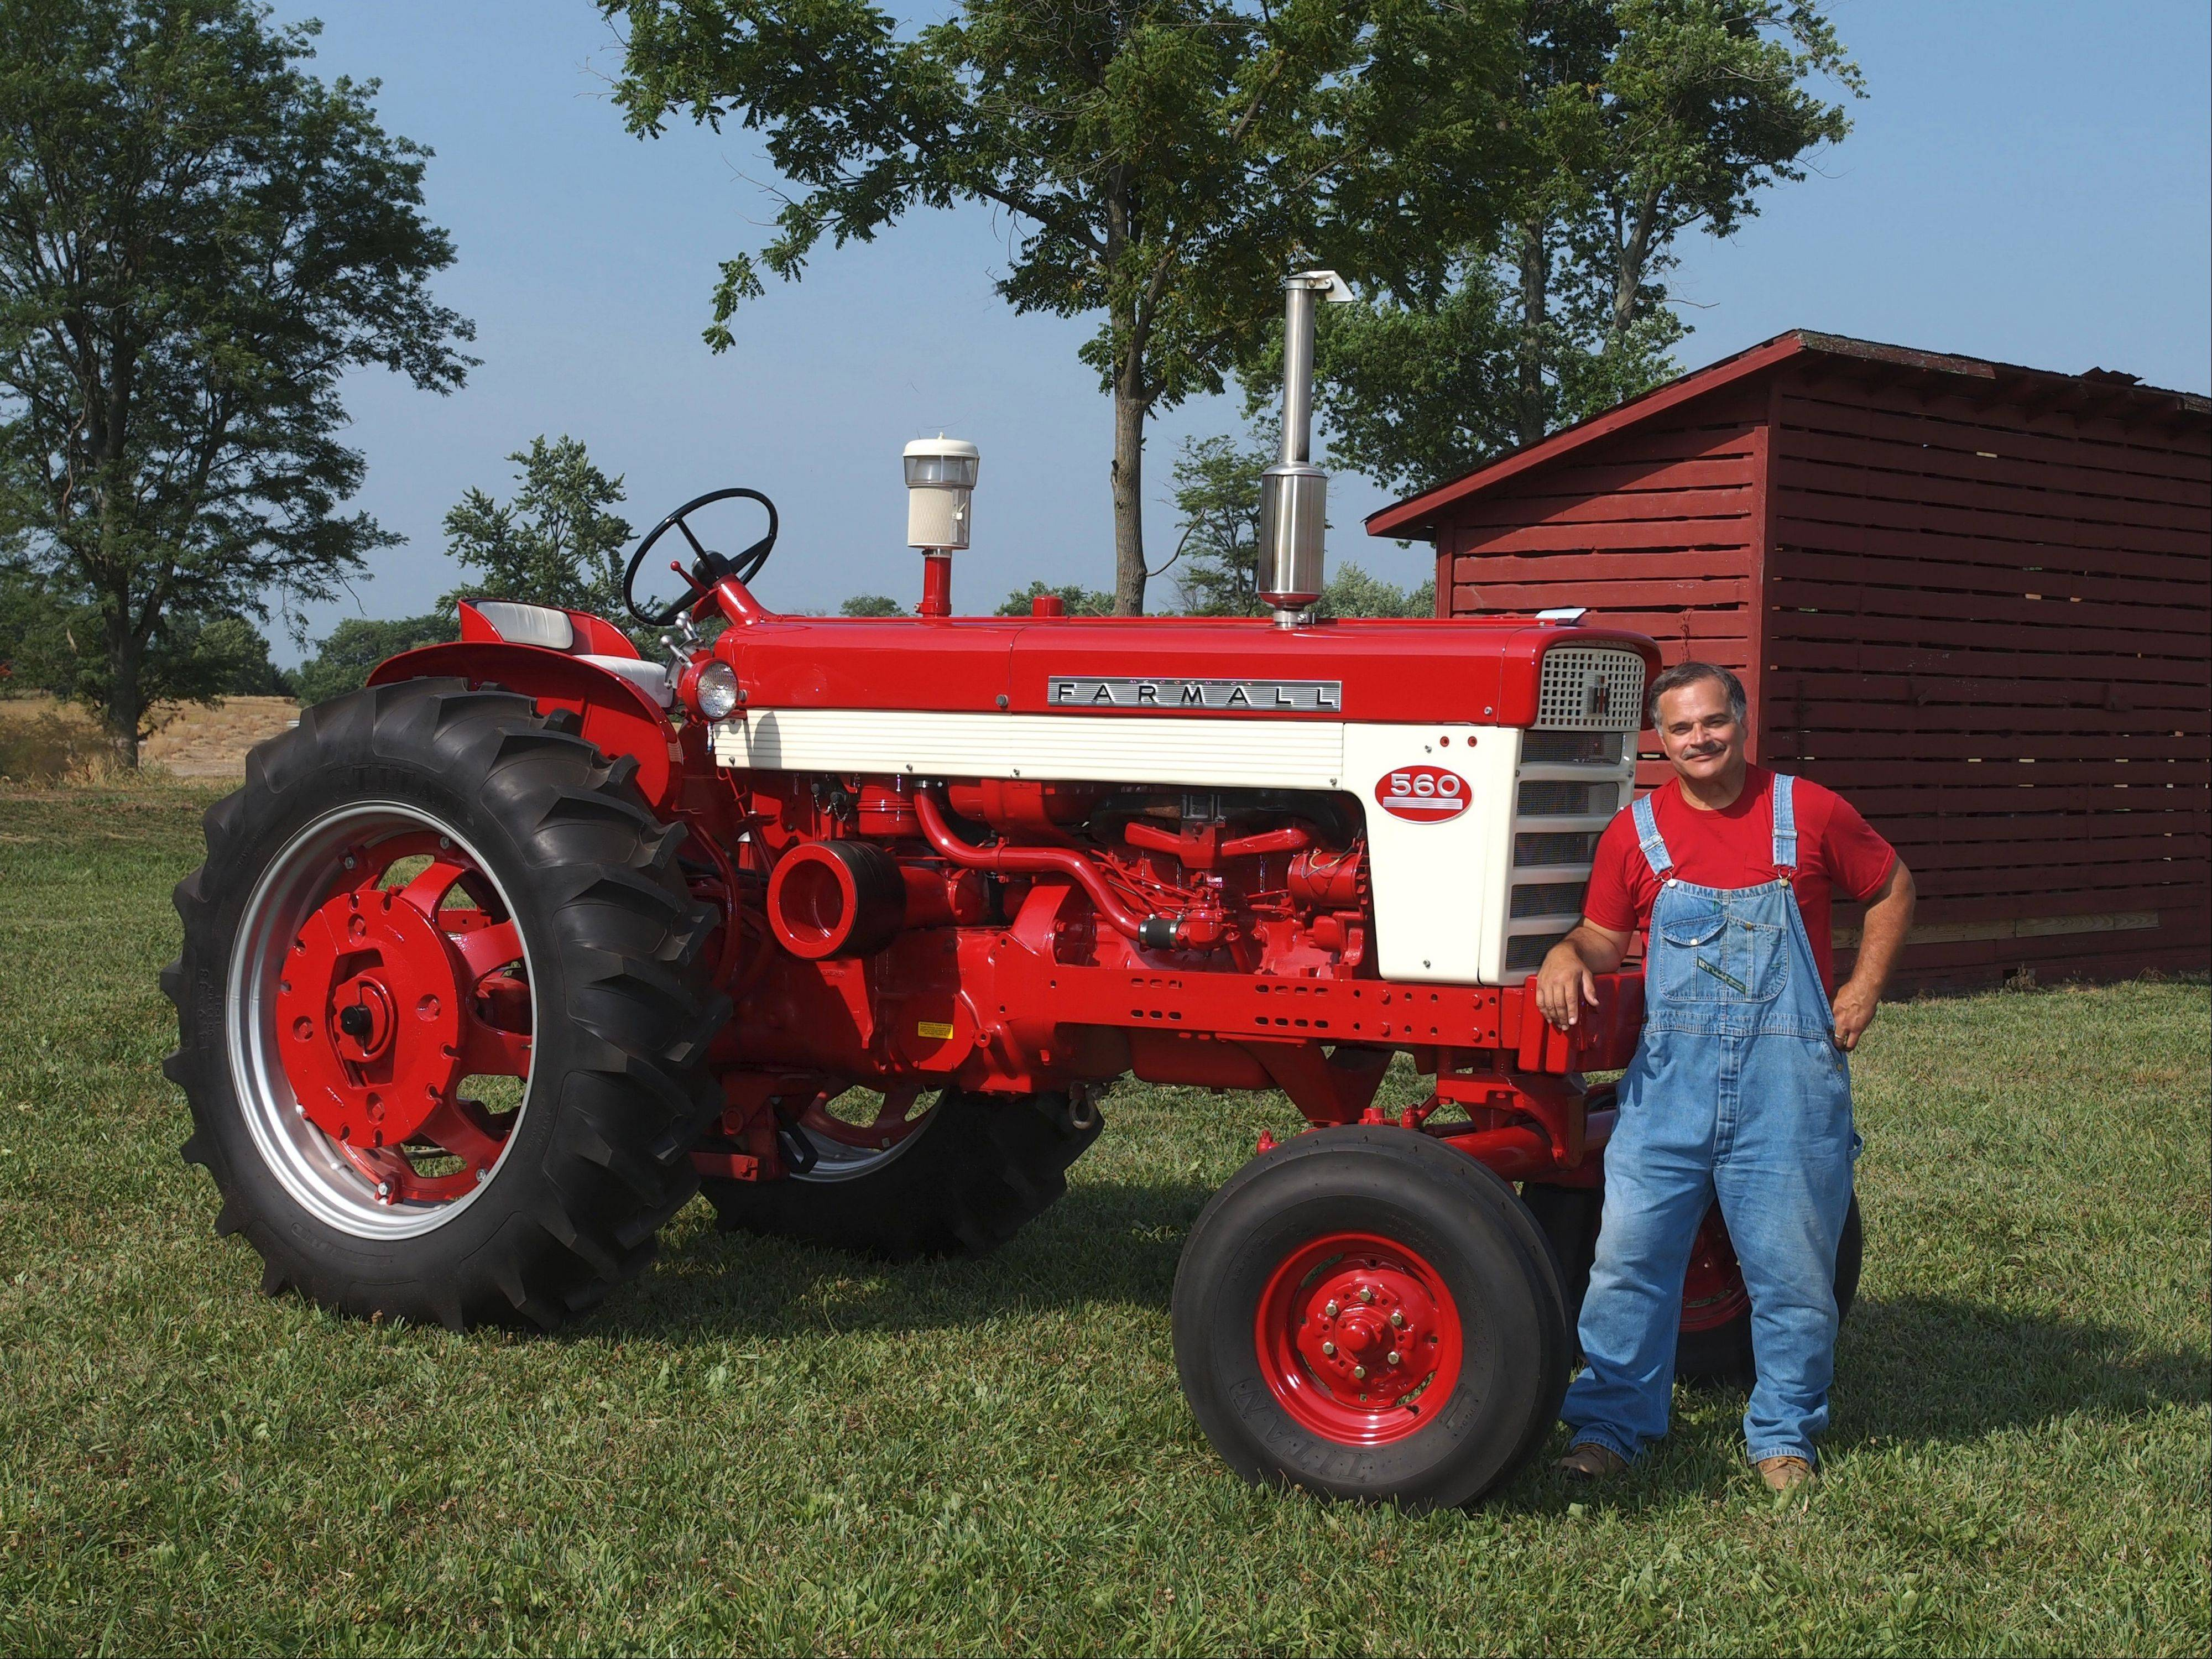 Max Armstrong gives tractor enthusiasts their own app